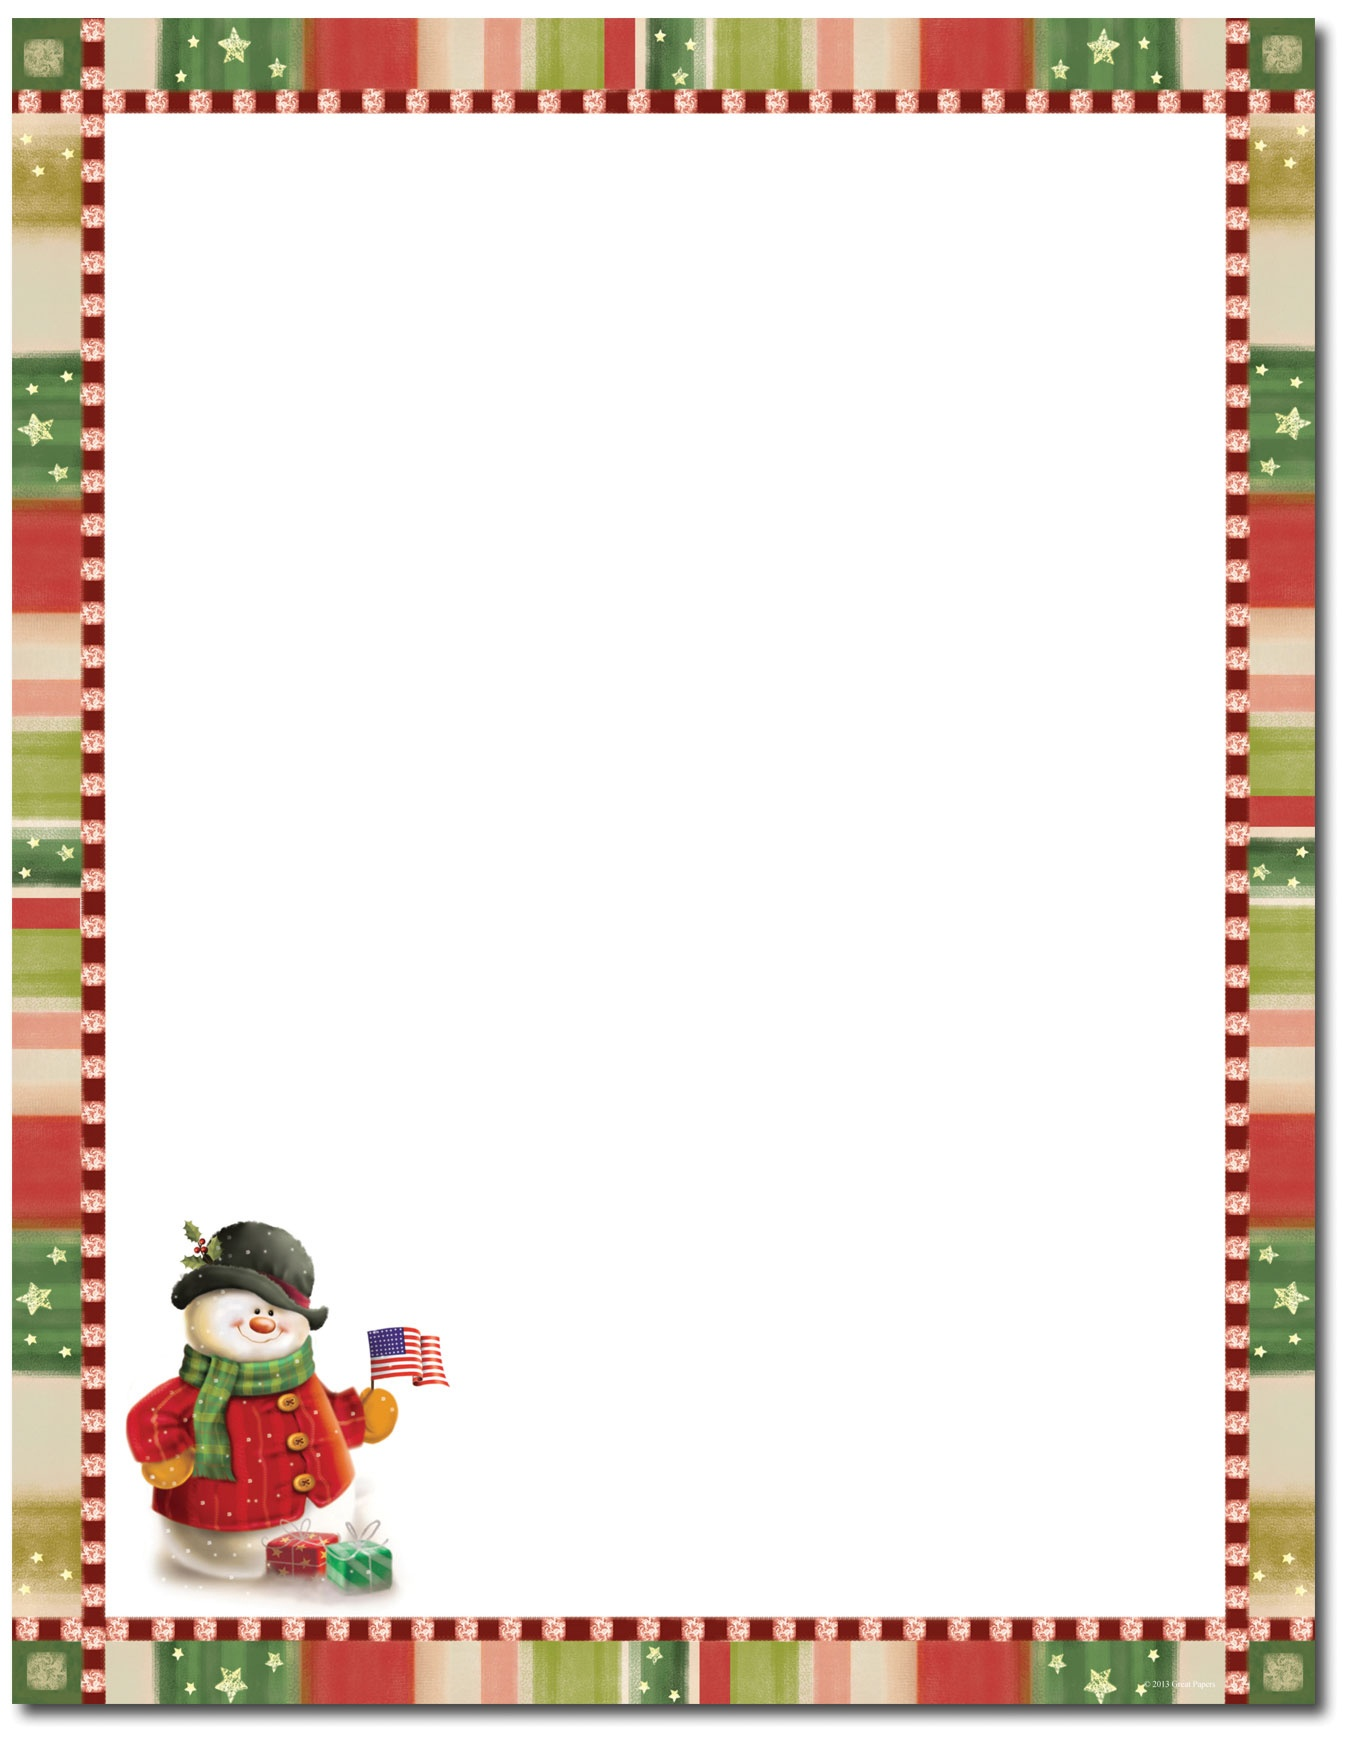 Free Christmas Stationary Cliparts, Download Free Clip Art, Free - Free Printable Christmas Letterhead